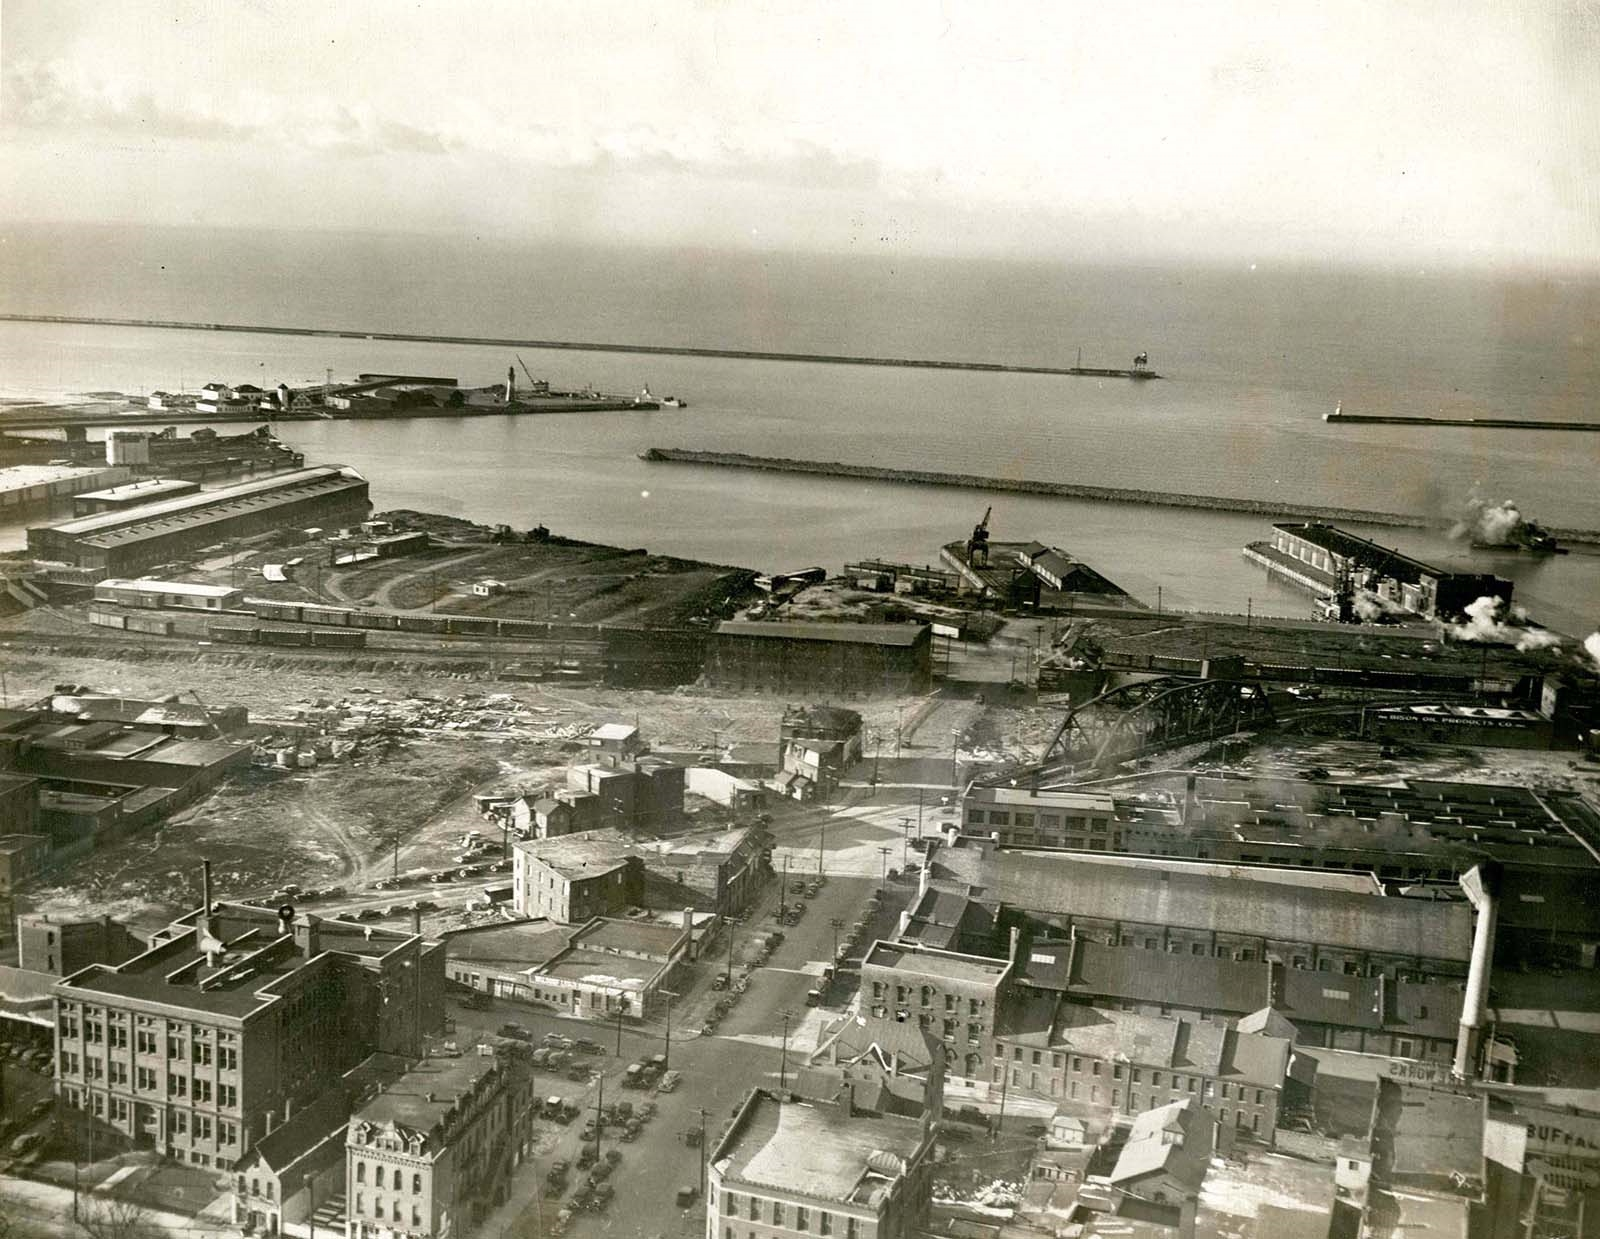 1919: An aerial photo of Buffalo's waterfront, looking very different than it does today.